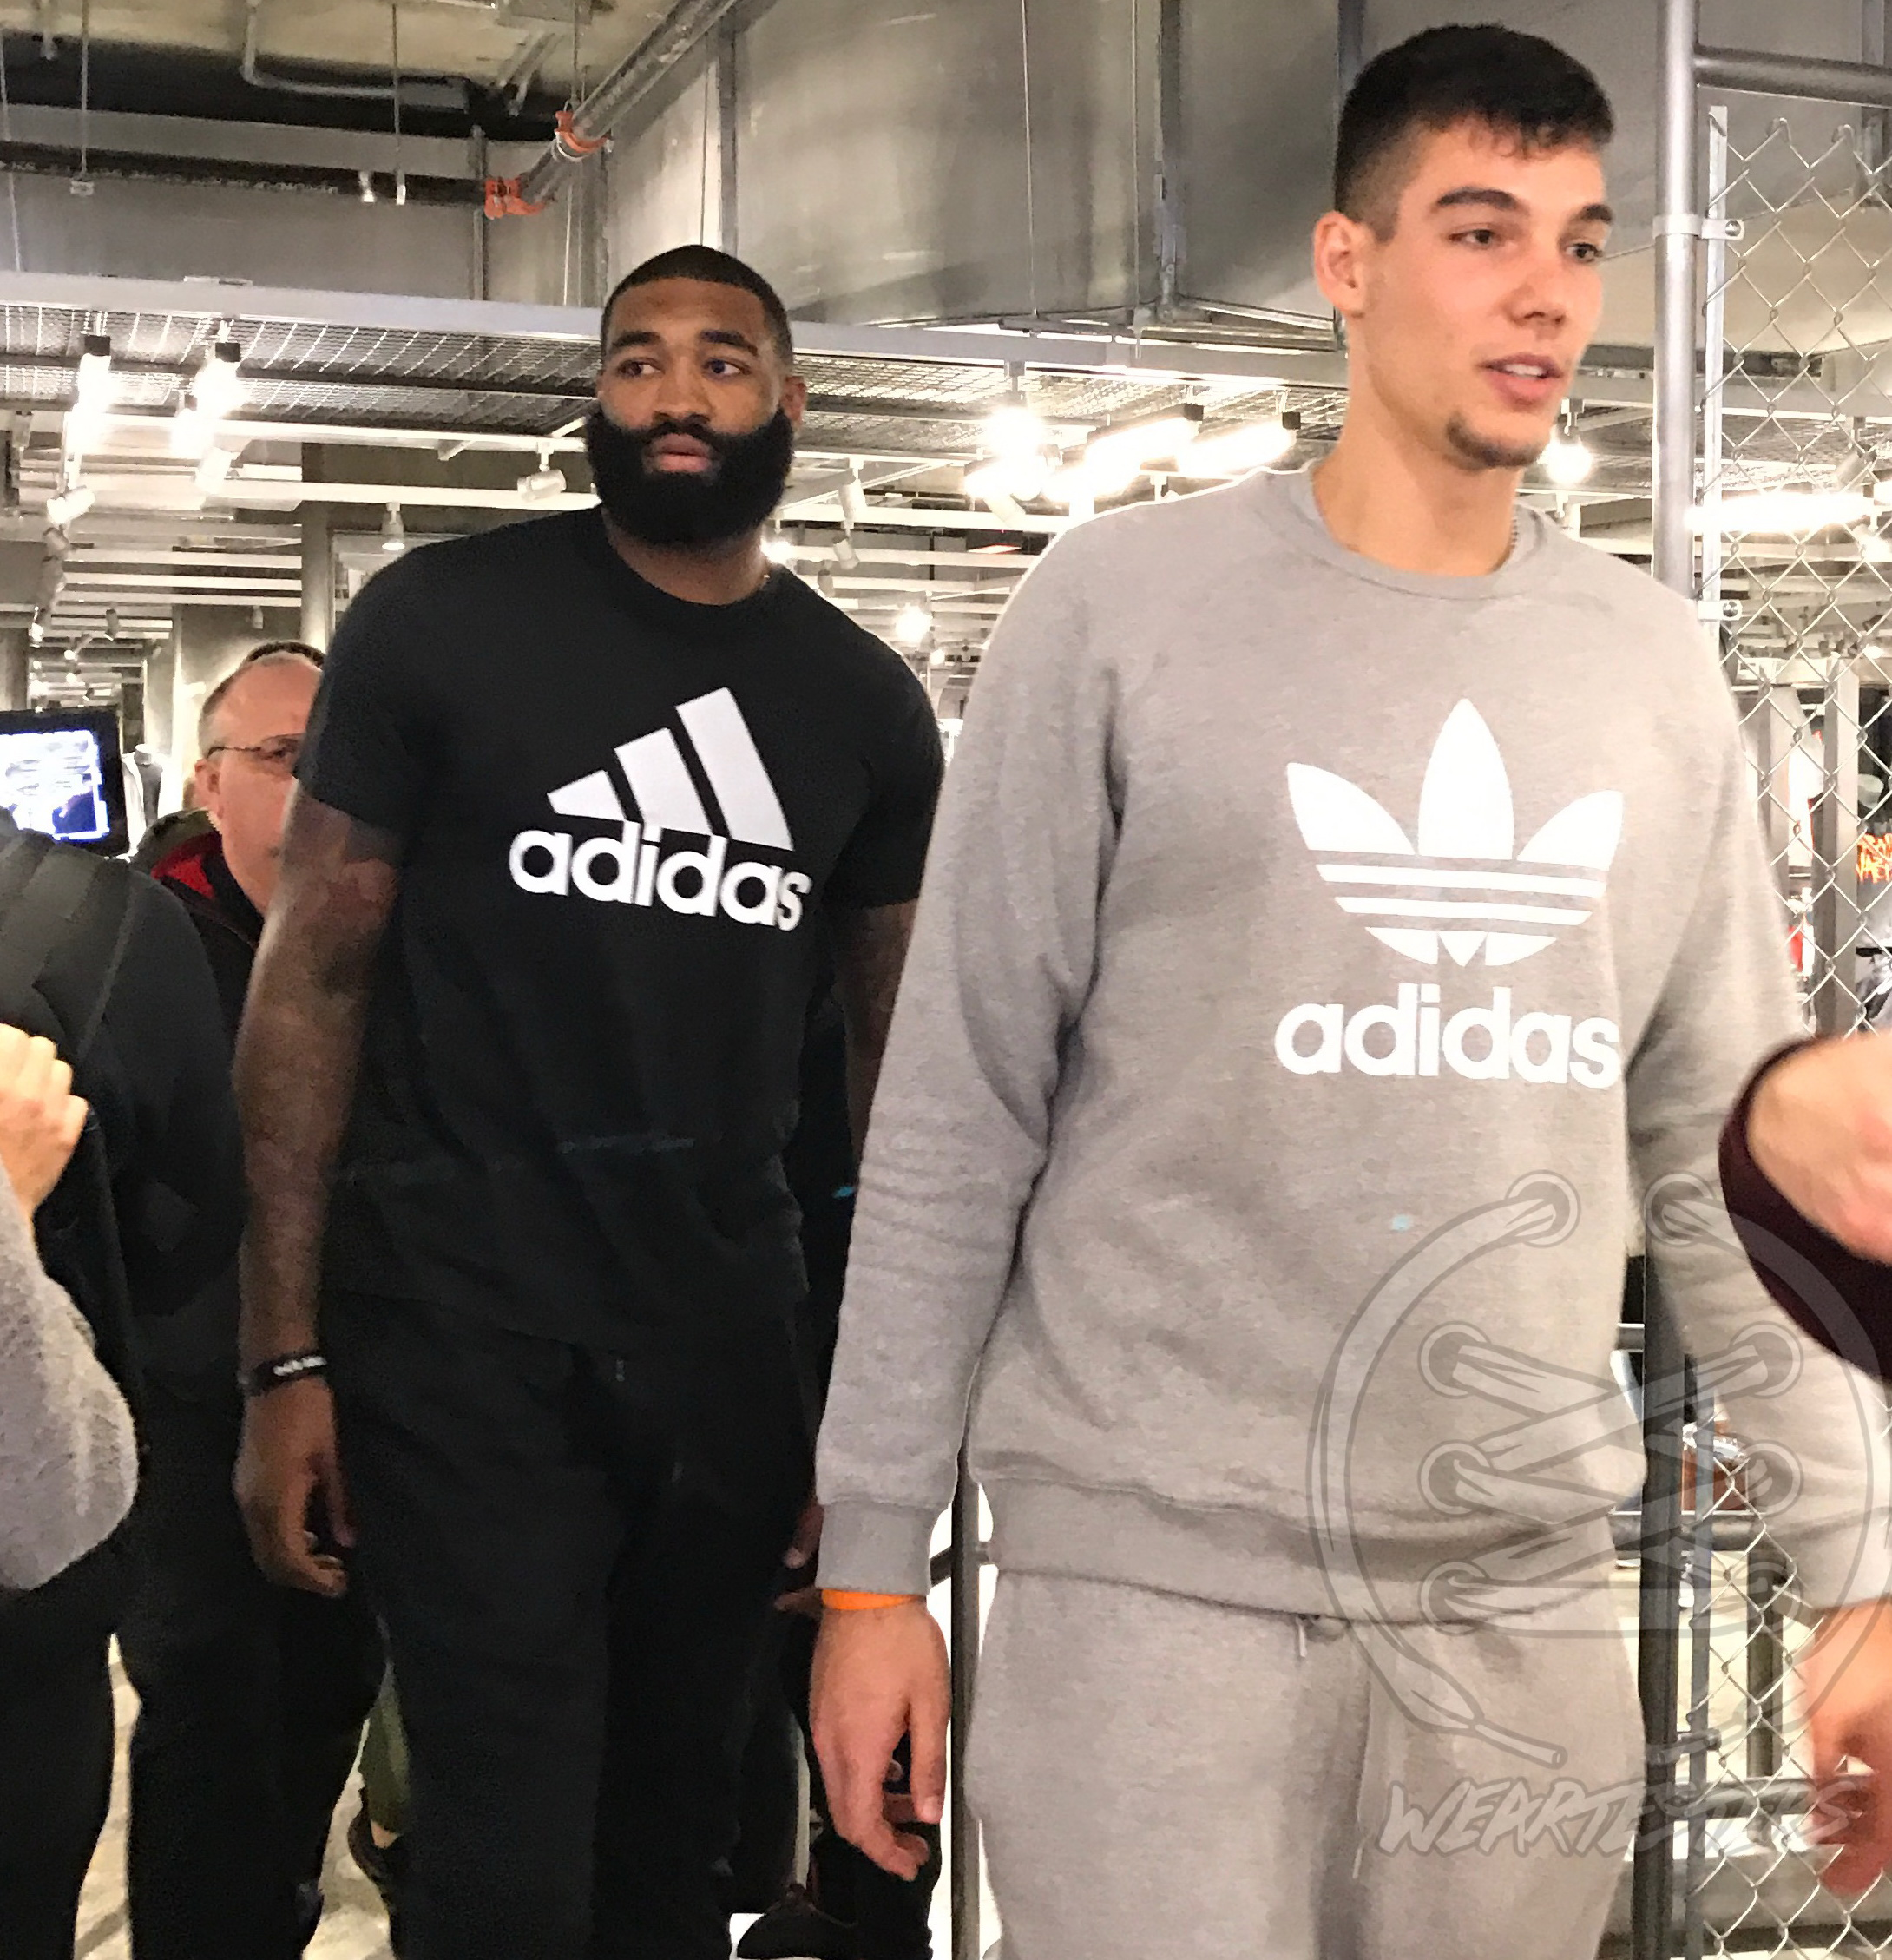 faf54fca1289c Adidas NYC - Willy and Kyle) - WearTesters